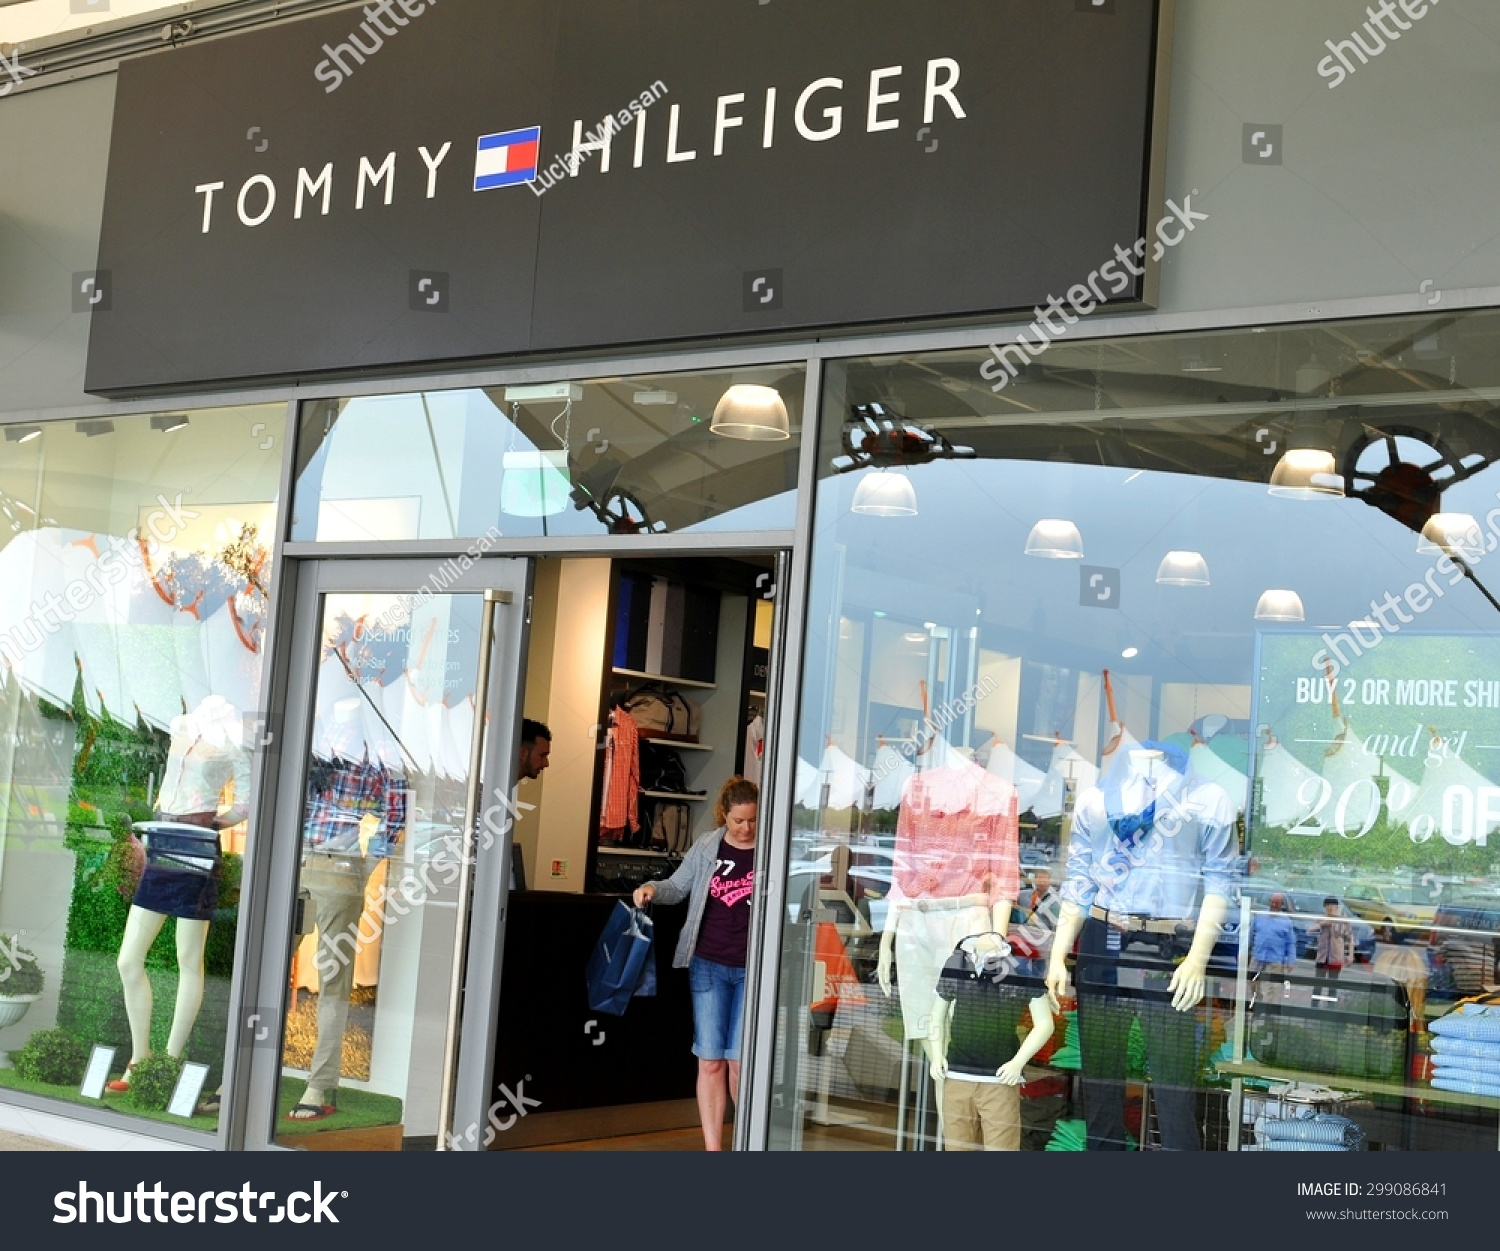 Oct 18,  · TOMMY HILFIGER WOMEN. Discover the latest styles in women's clothing, shoes, bags and accessories from Tommy dionsnowmobilevalues.mlr you are shopping for a glam event, your next festival or a big night out, this season's collection from Tommy Hilfiger for women has got you covered.